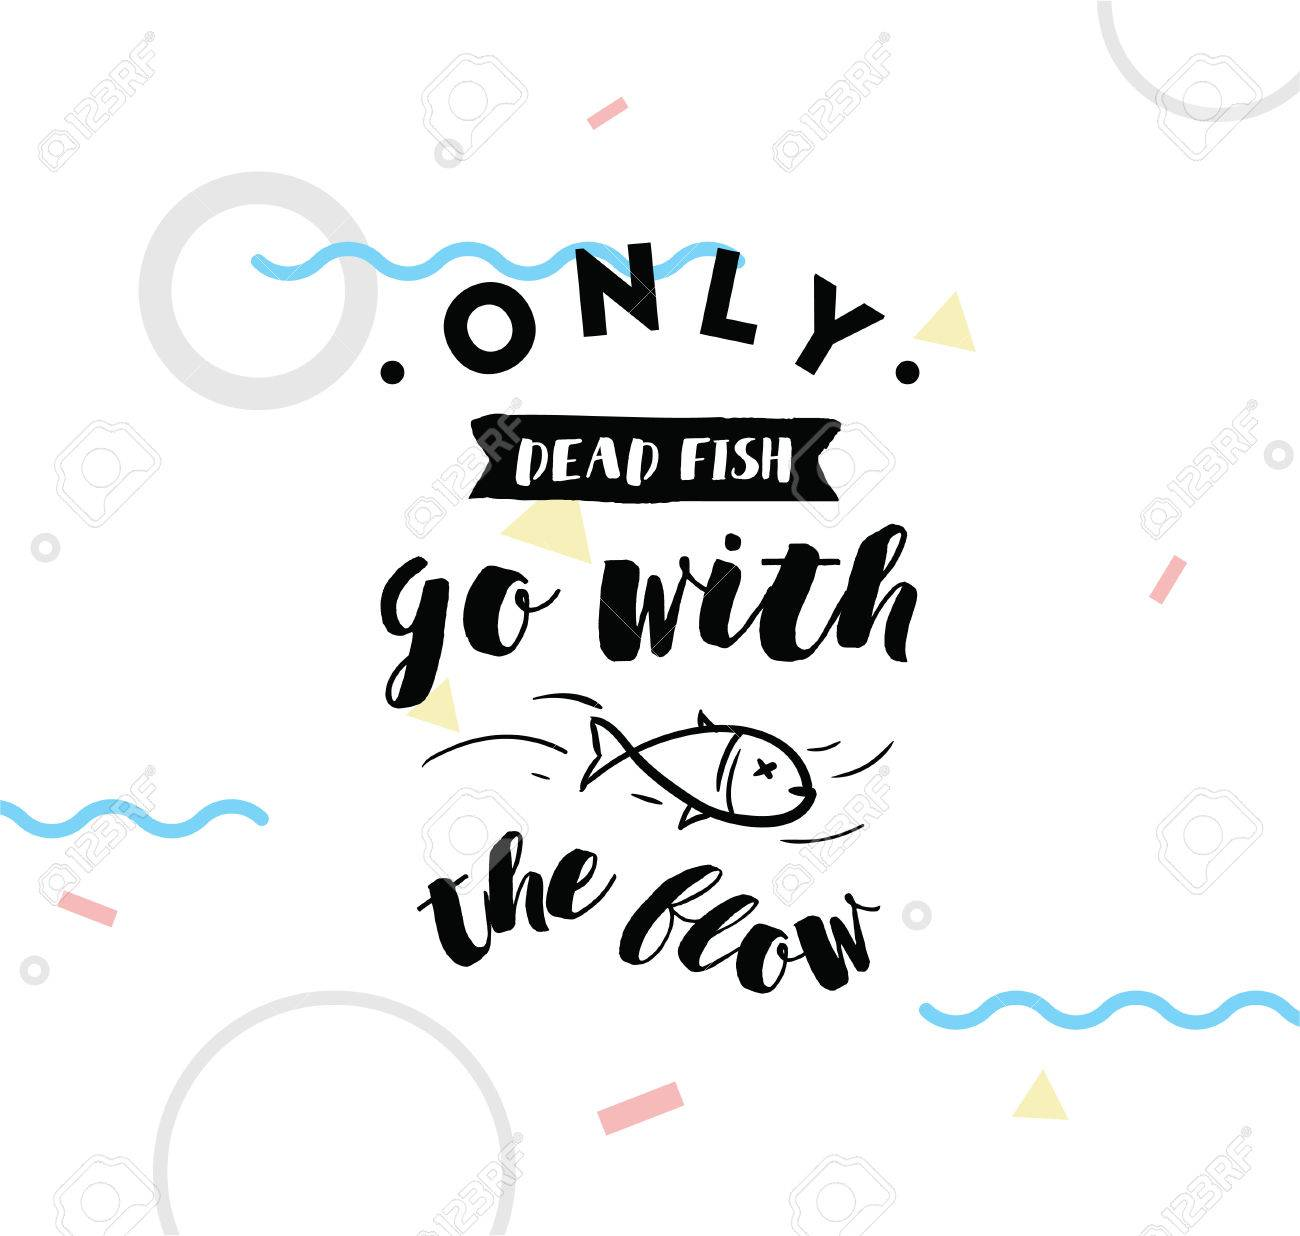 Go With The Flow Quotes Only Dead Fish Go With The Flowinspirational Quote Motivation